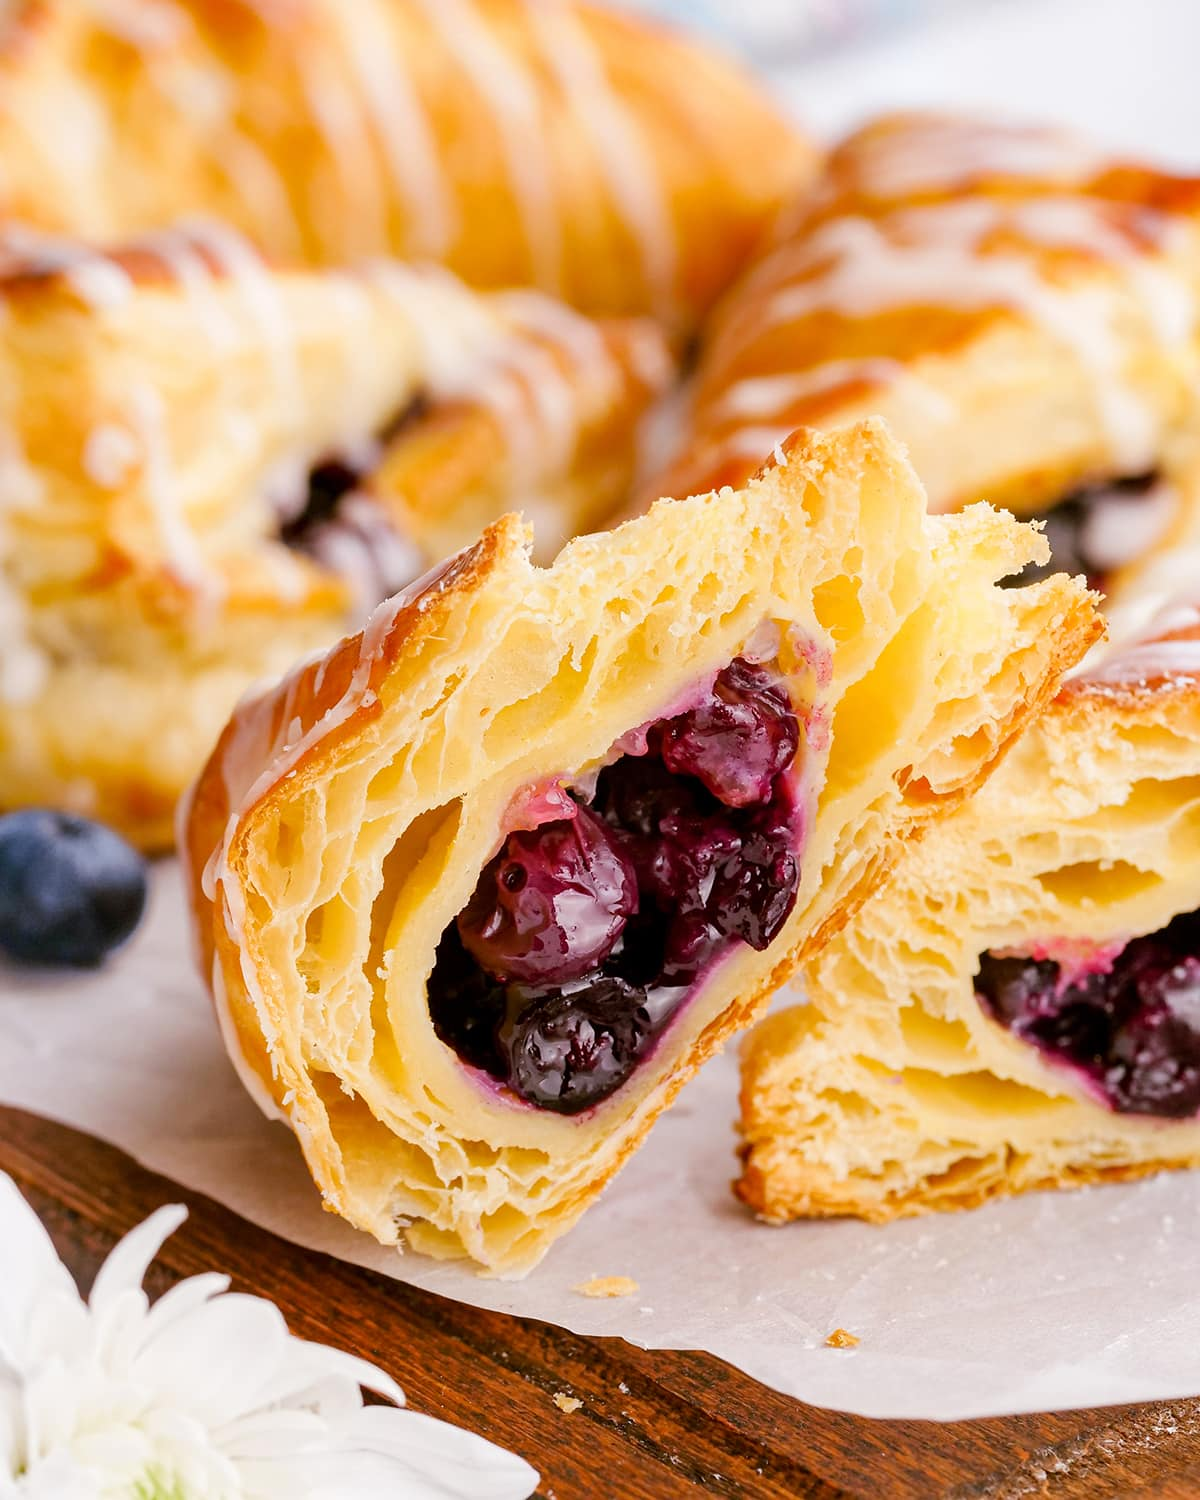 A blueberry turnover cut in half to show the flaky layers, and the blueberry filling.